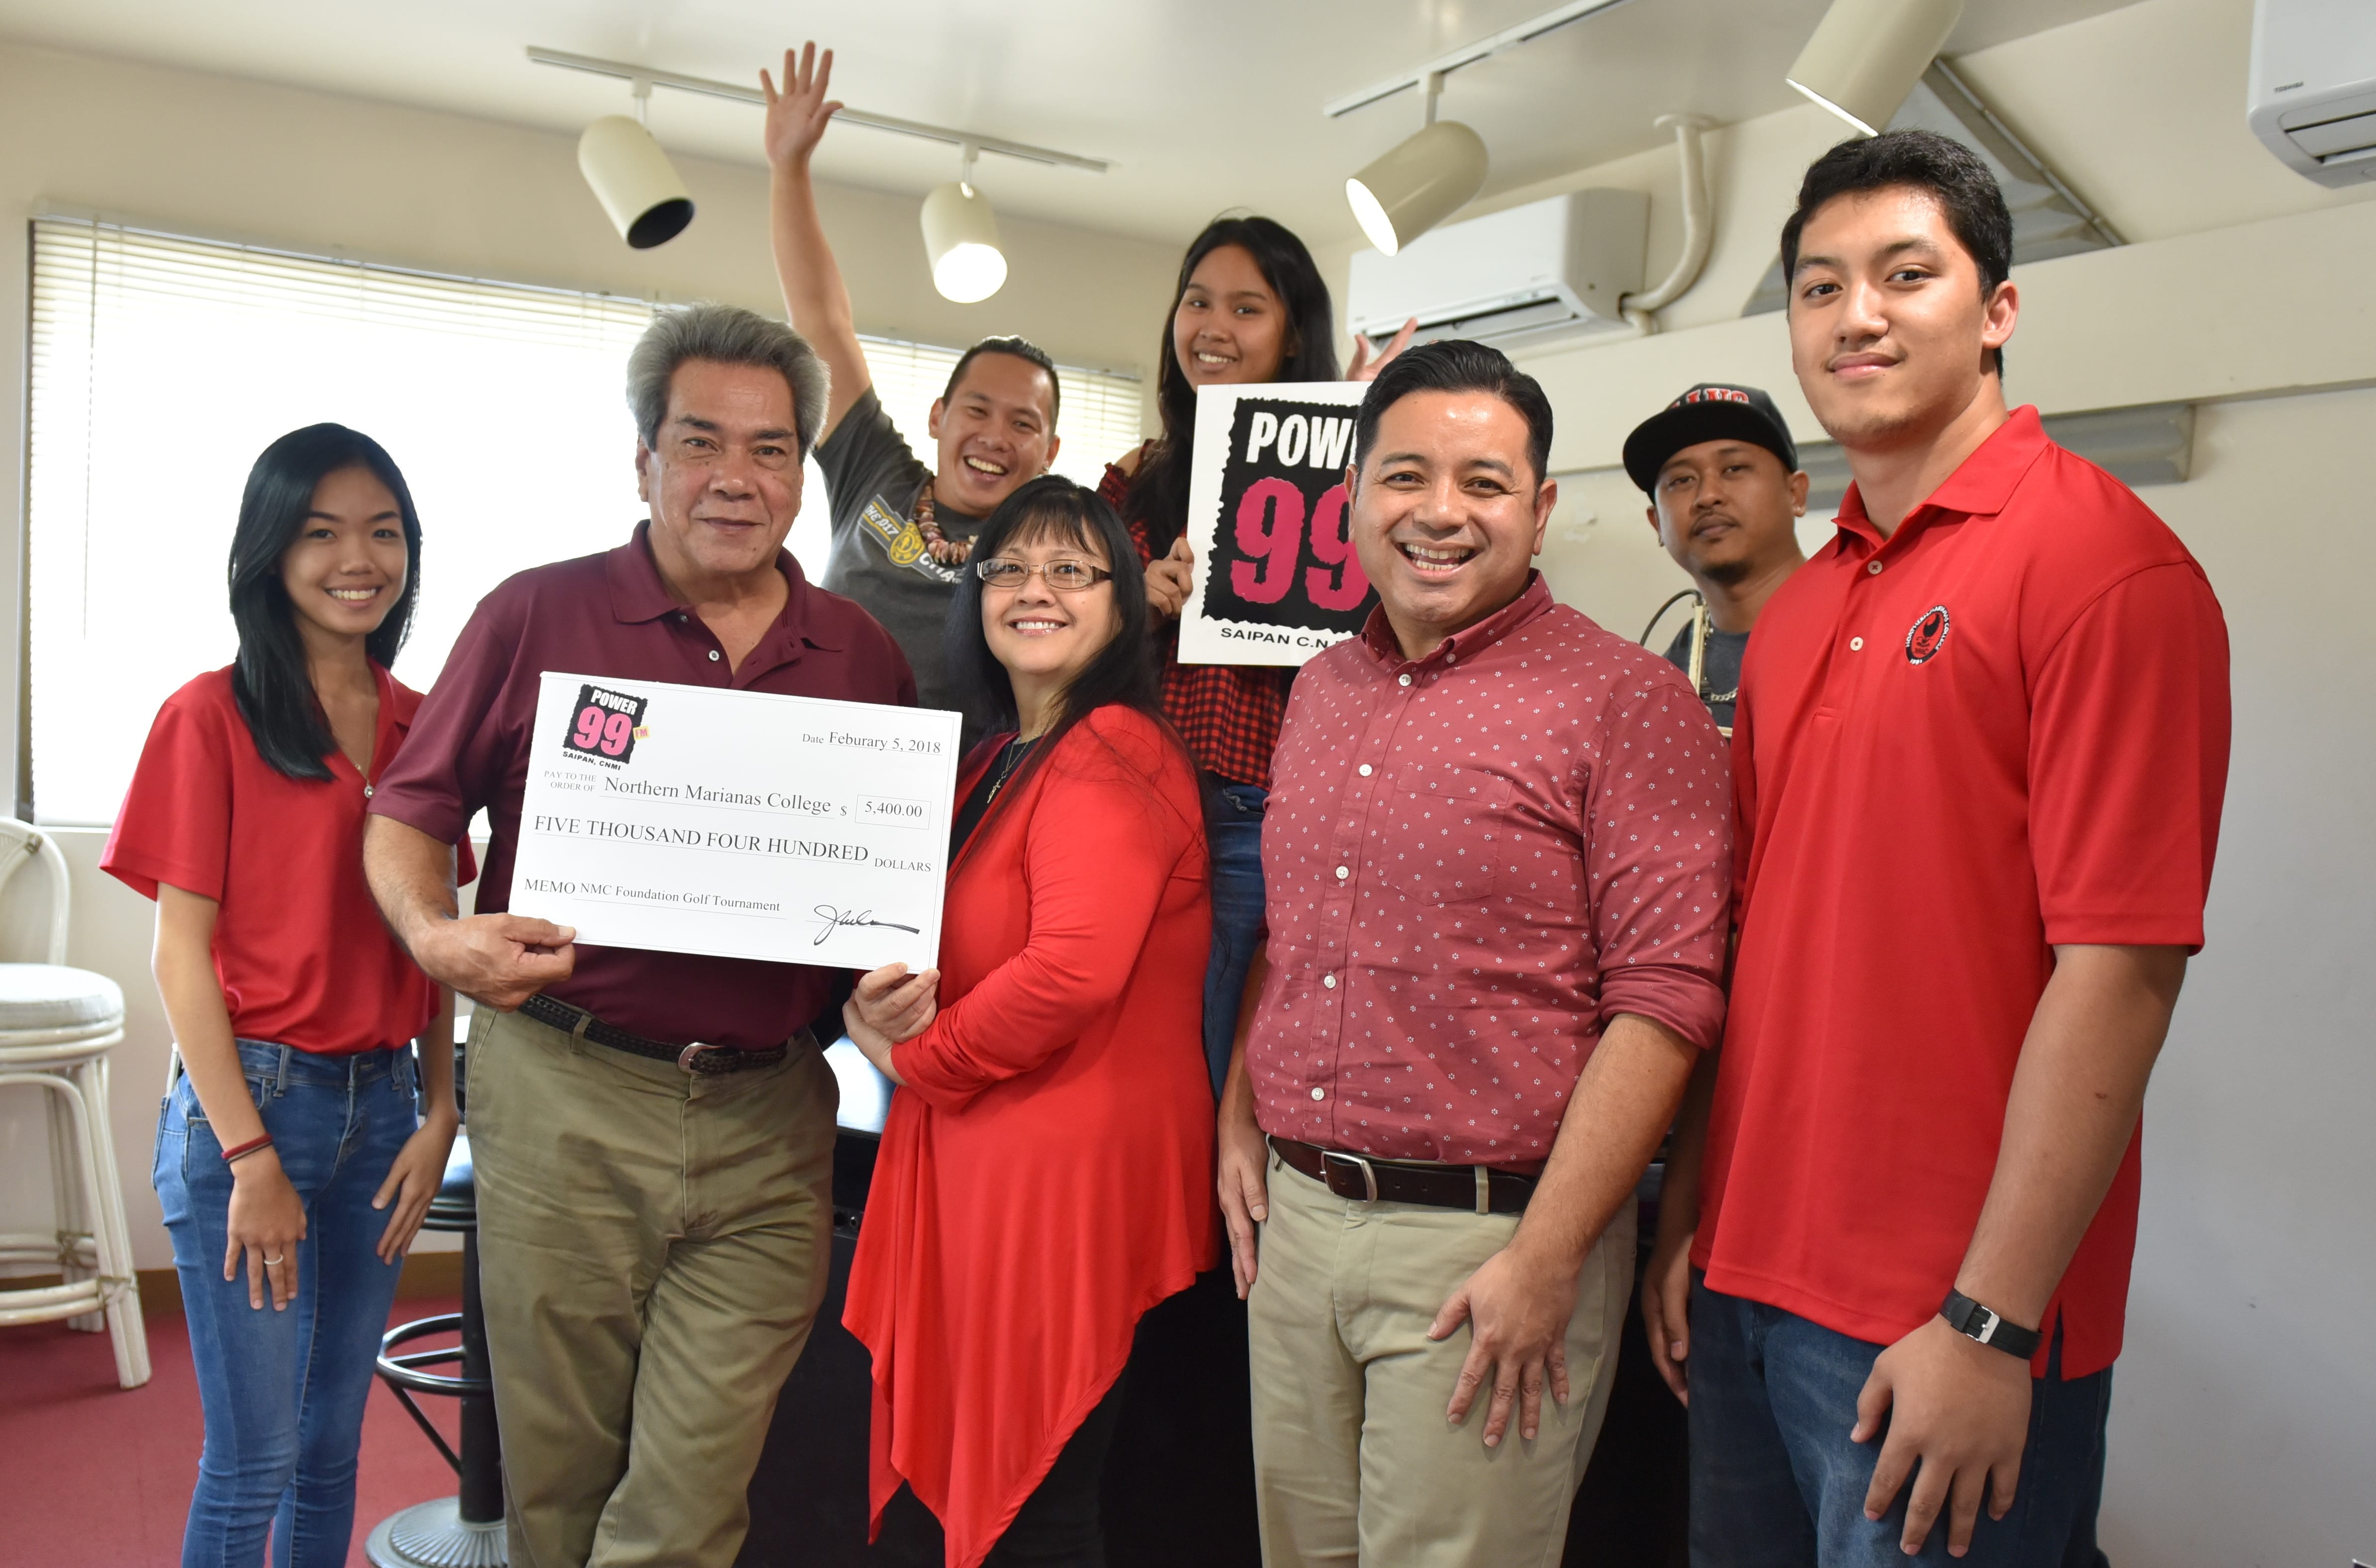 Power 99 recently donated over $5,000 in radio advertisements to Northern Marianas College in support of the annual NMC Foundation Golf Tournament that will be held on Saturday, March 3, 2018.